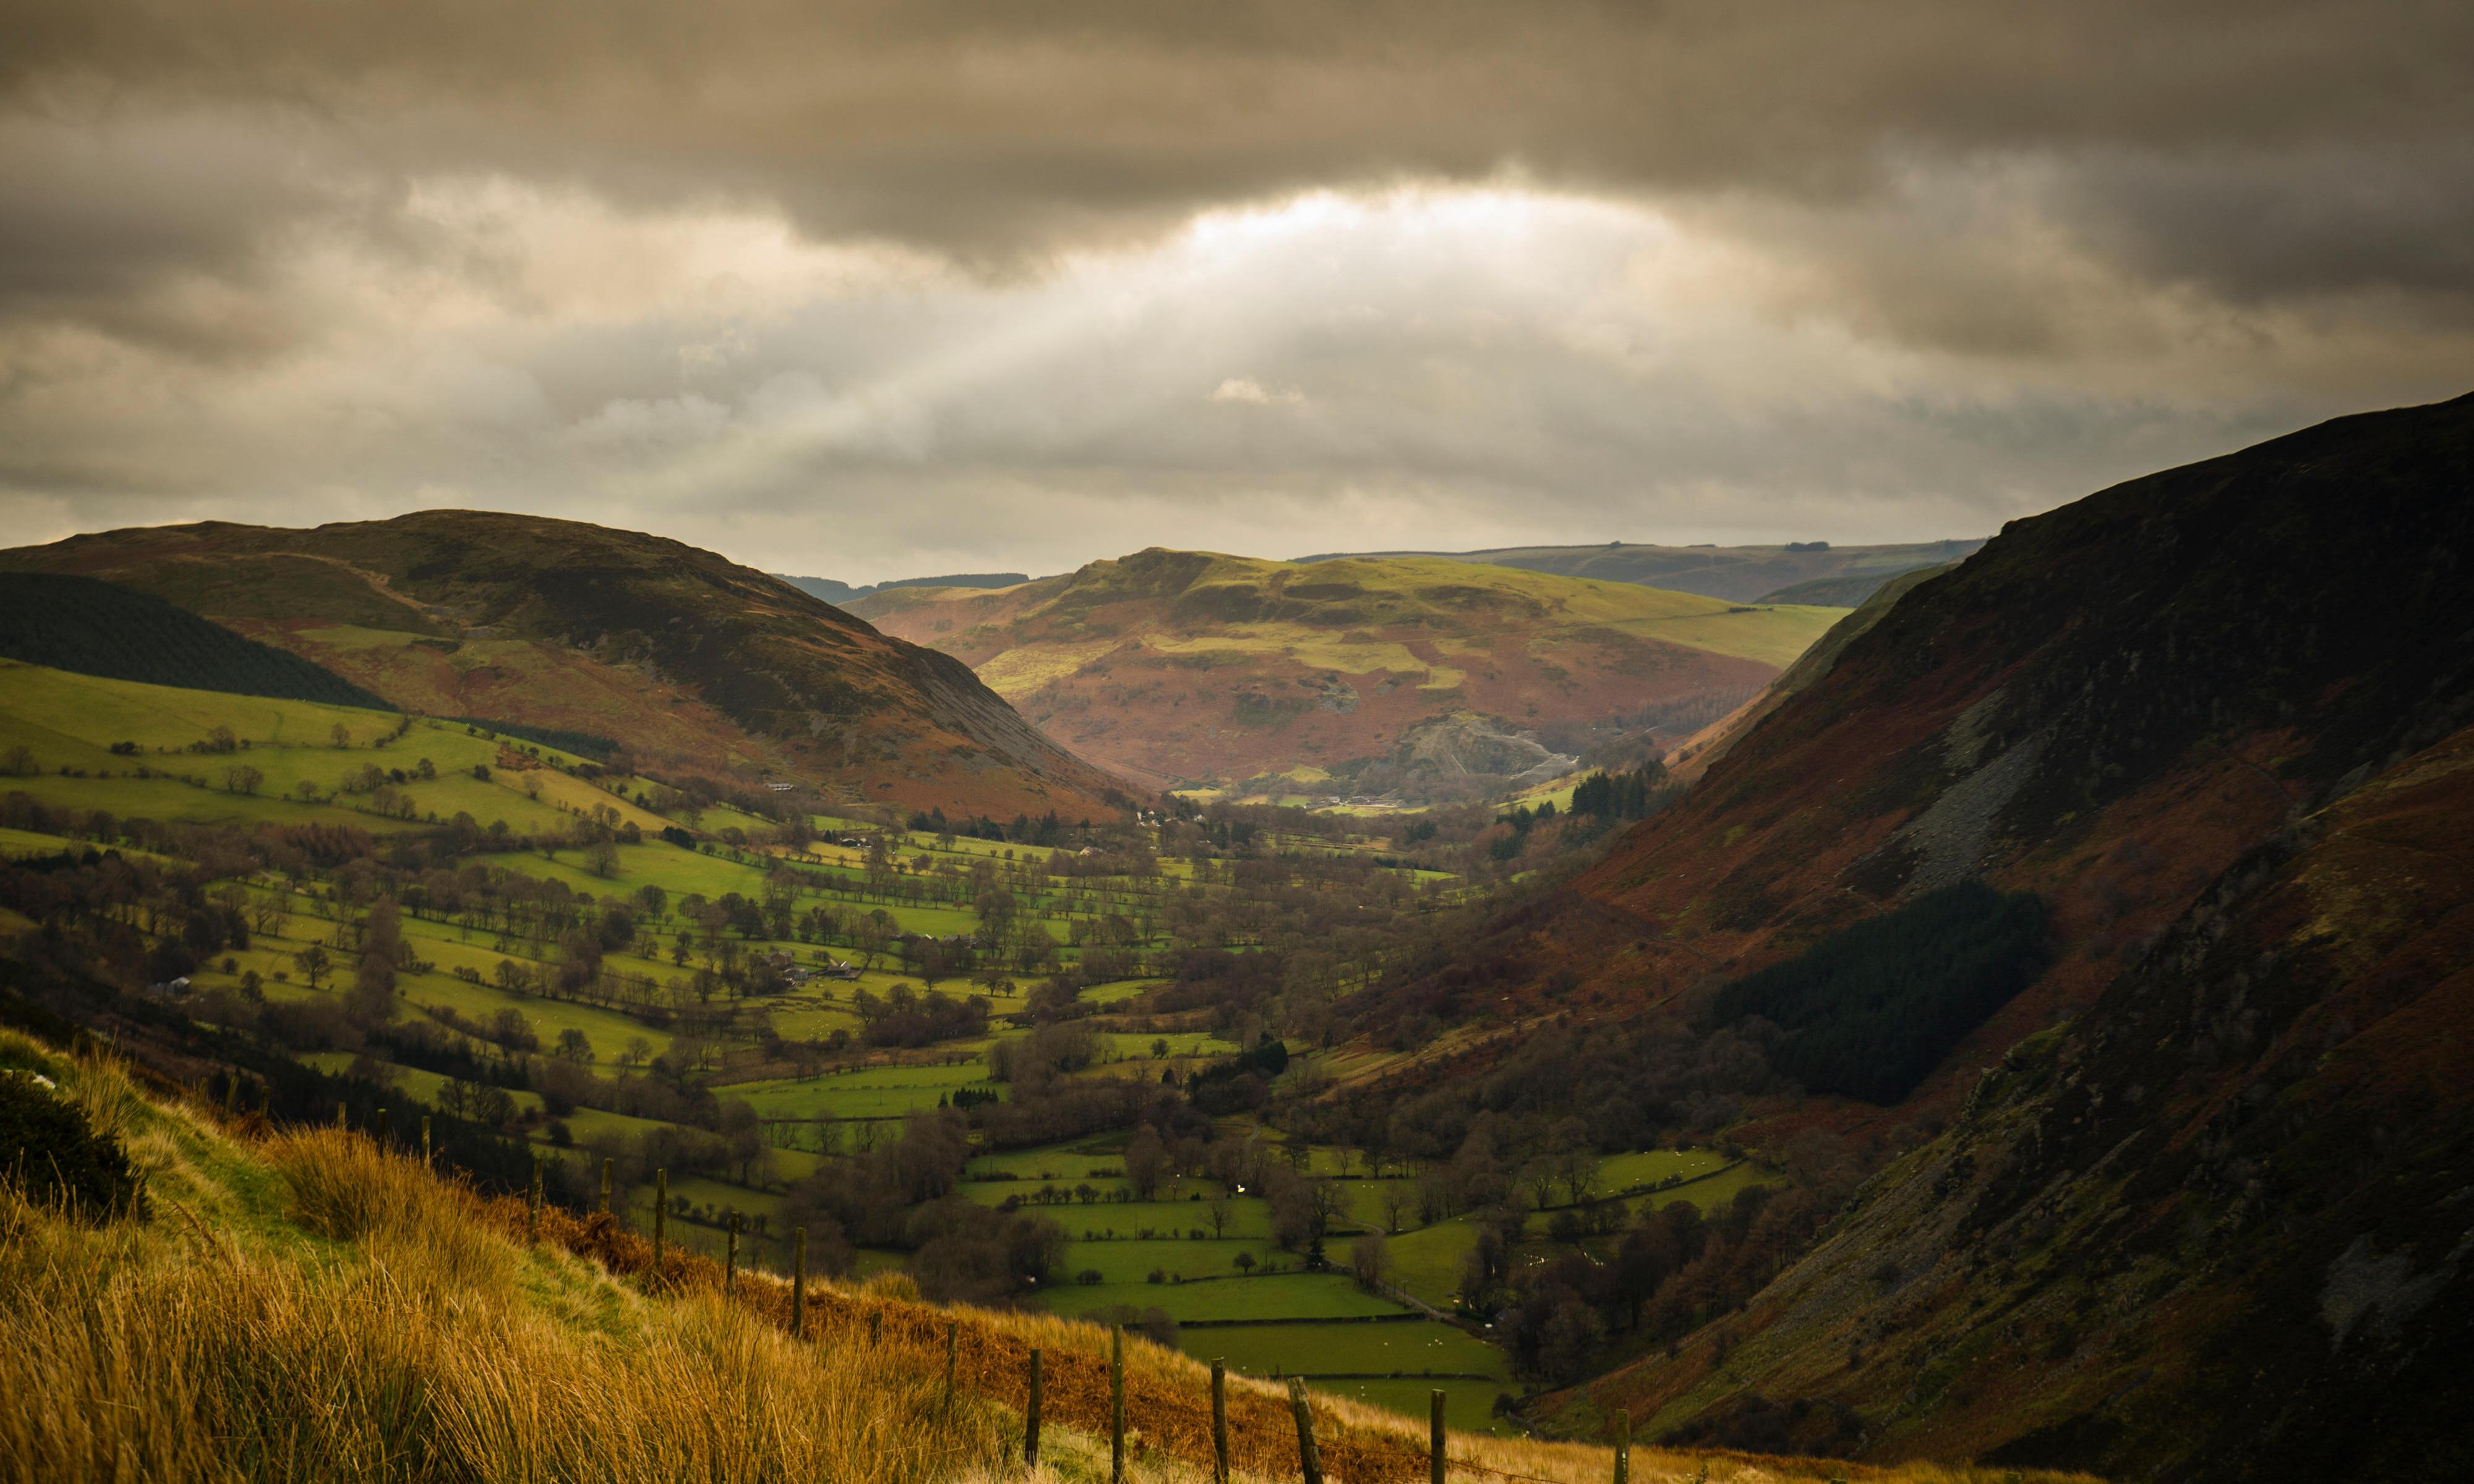 Country diary: A wild walk to Llangynog, in the footsteps of Coleridge – Jim Perrin